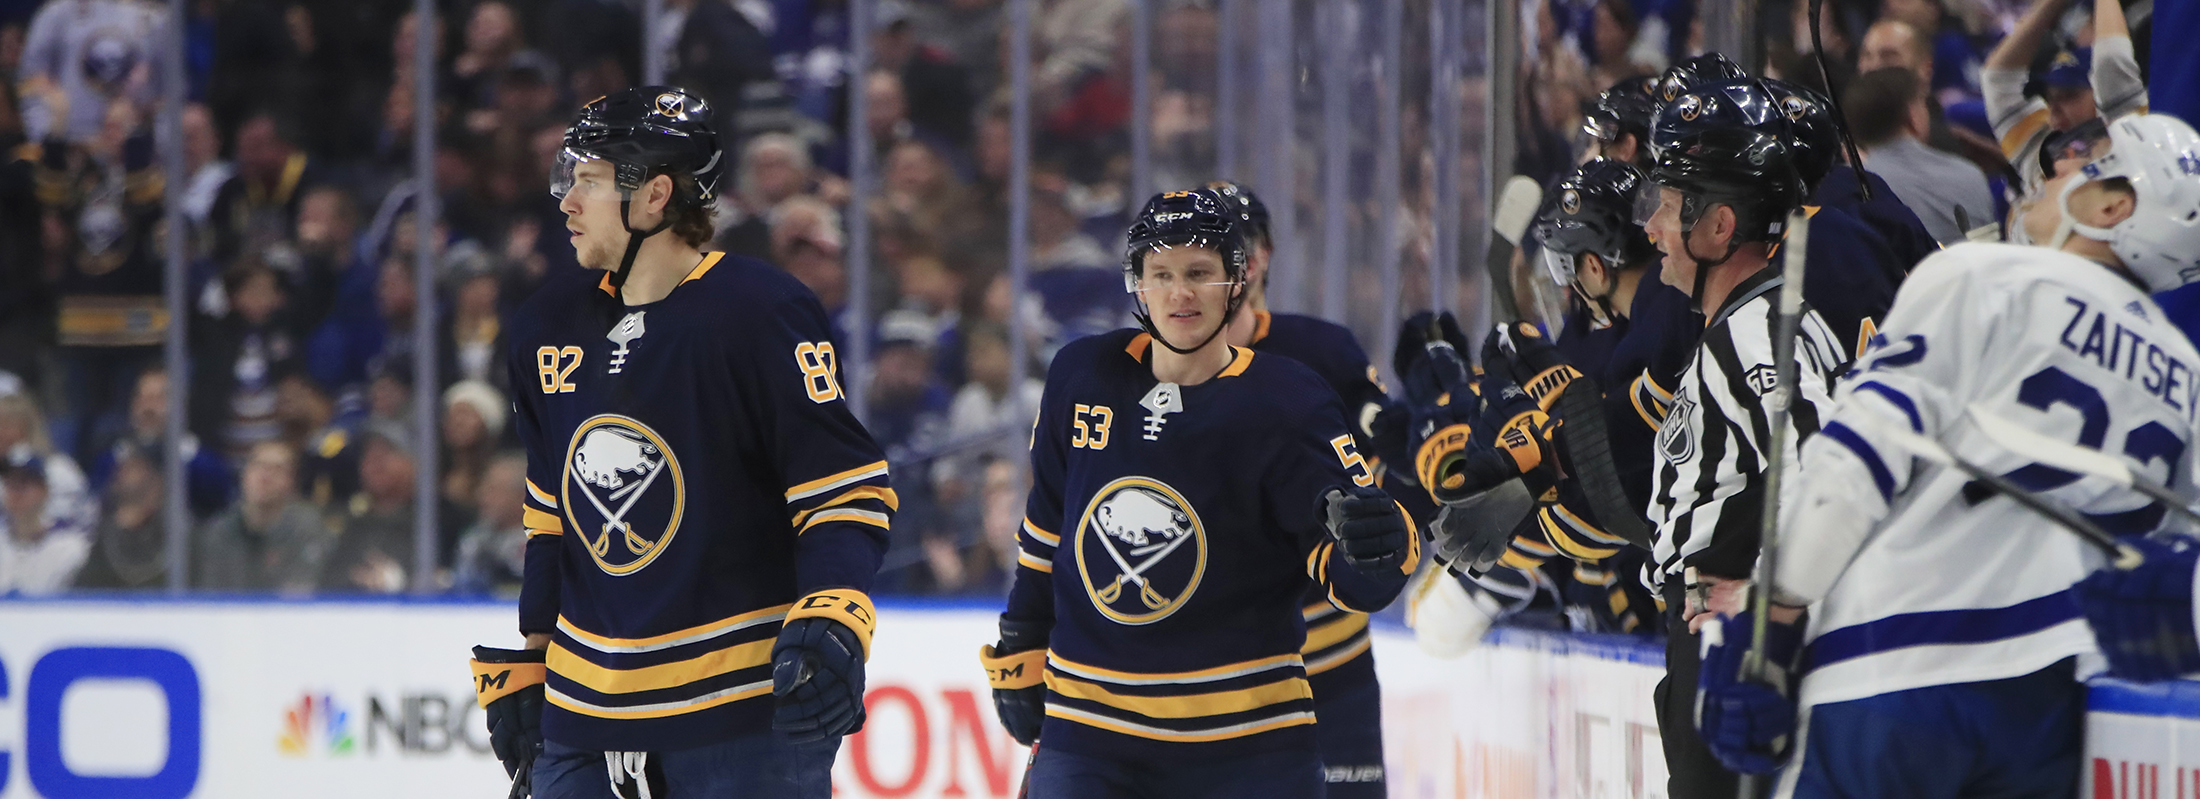 The Sabres are 3-7 in their last 10 games and are in the midst of a critical seven-game homestand. (Harry Scull Jr./News file photo)